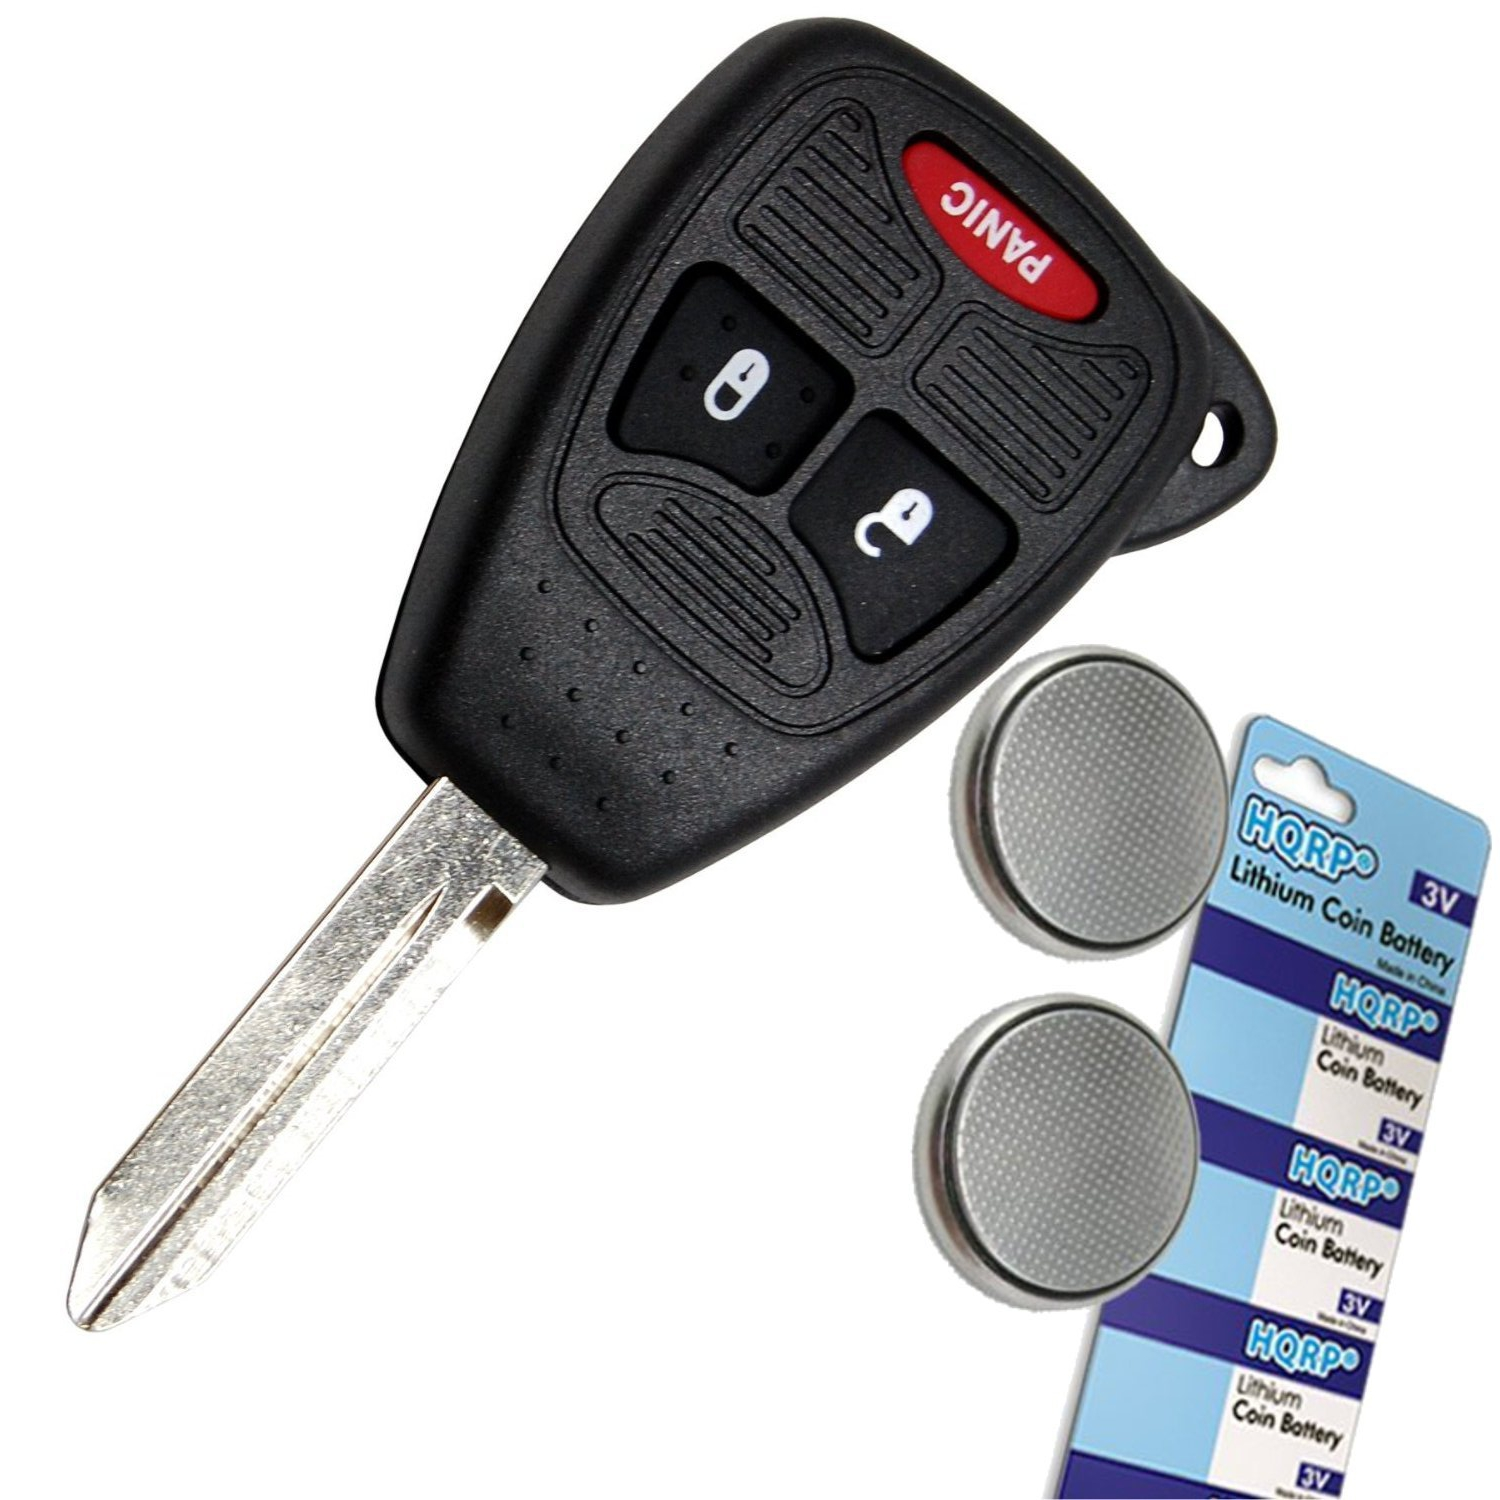 HQRP Transmitter and Two Batteries for Dodge Ram 3500 / 2500/ 1500 / 2007 2006 2005 2008 07 06 05 08 Key-Fob Remote Shell Case Cover Smart Key Keyless FOB + HQRP Coaster